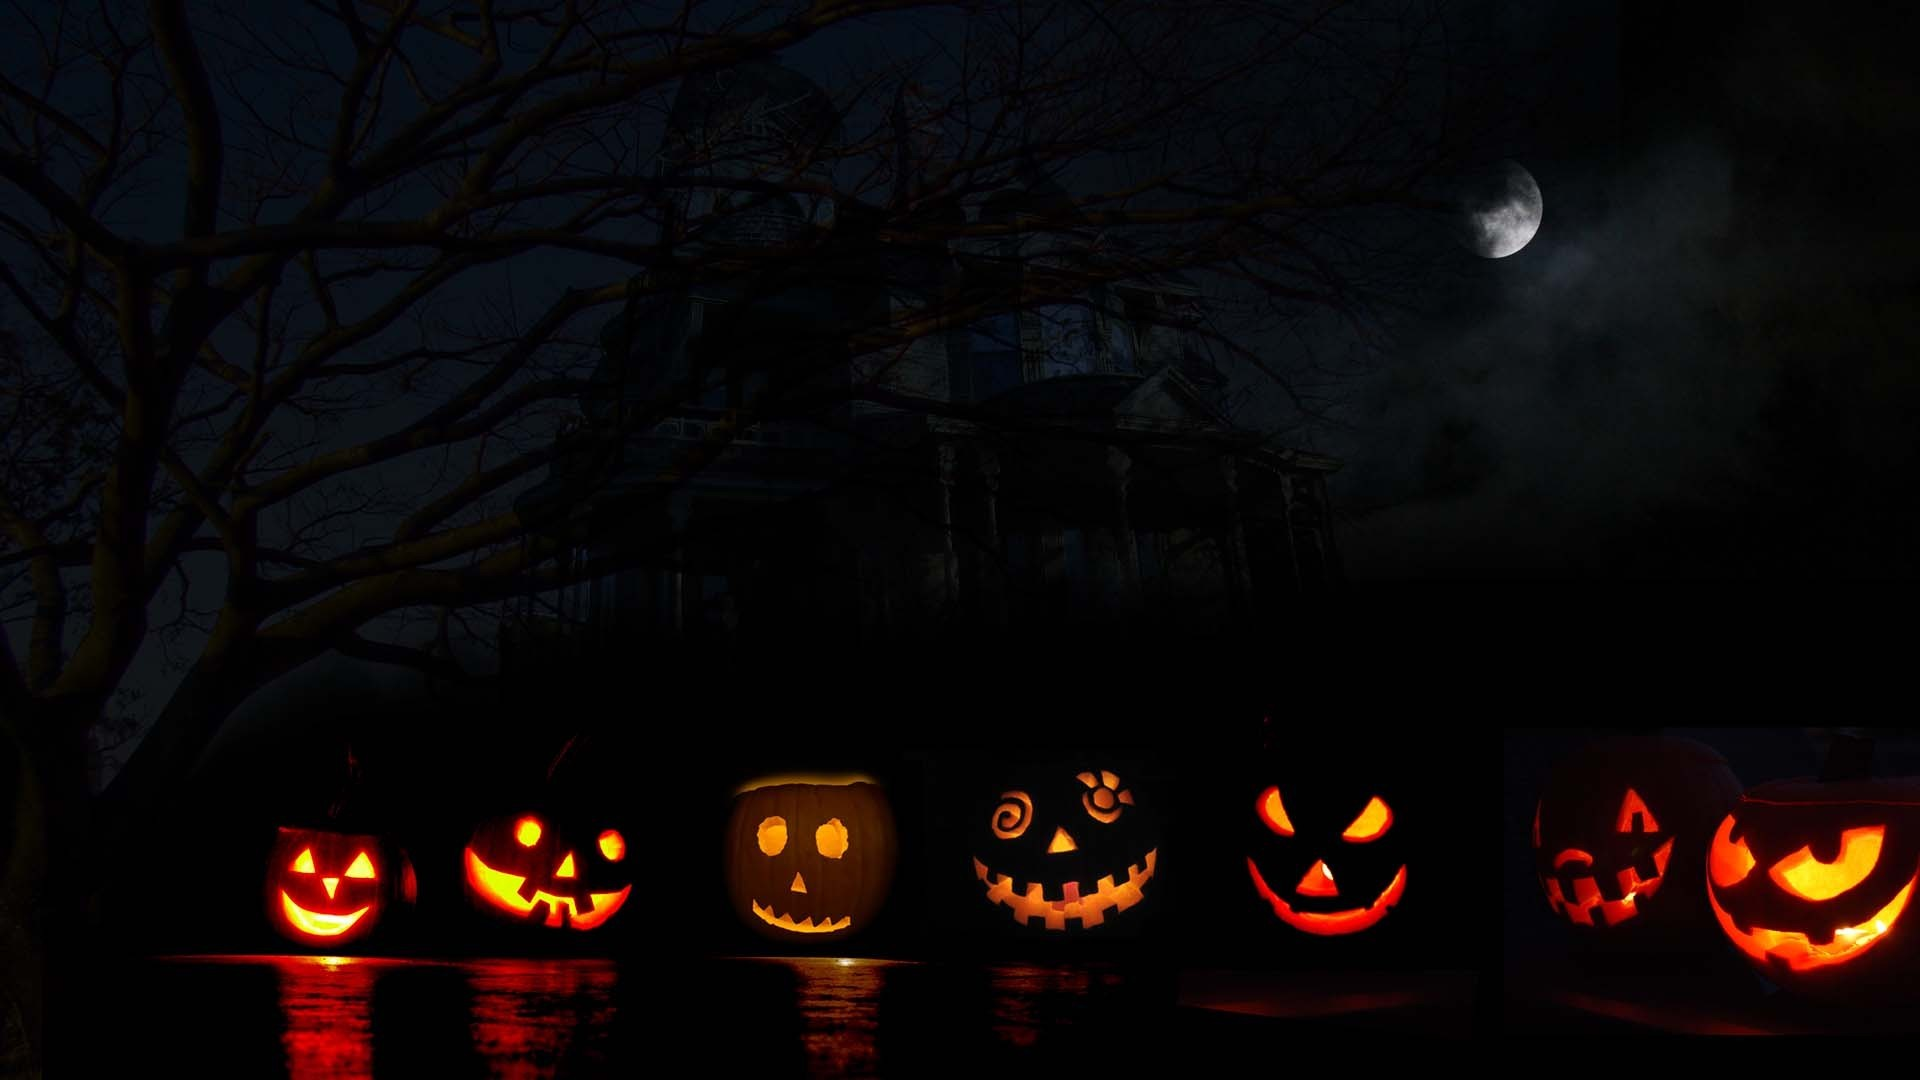 Halloween Background Hd.Scary Halloween Wallpapers For Desktop 54 Images